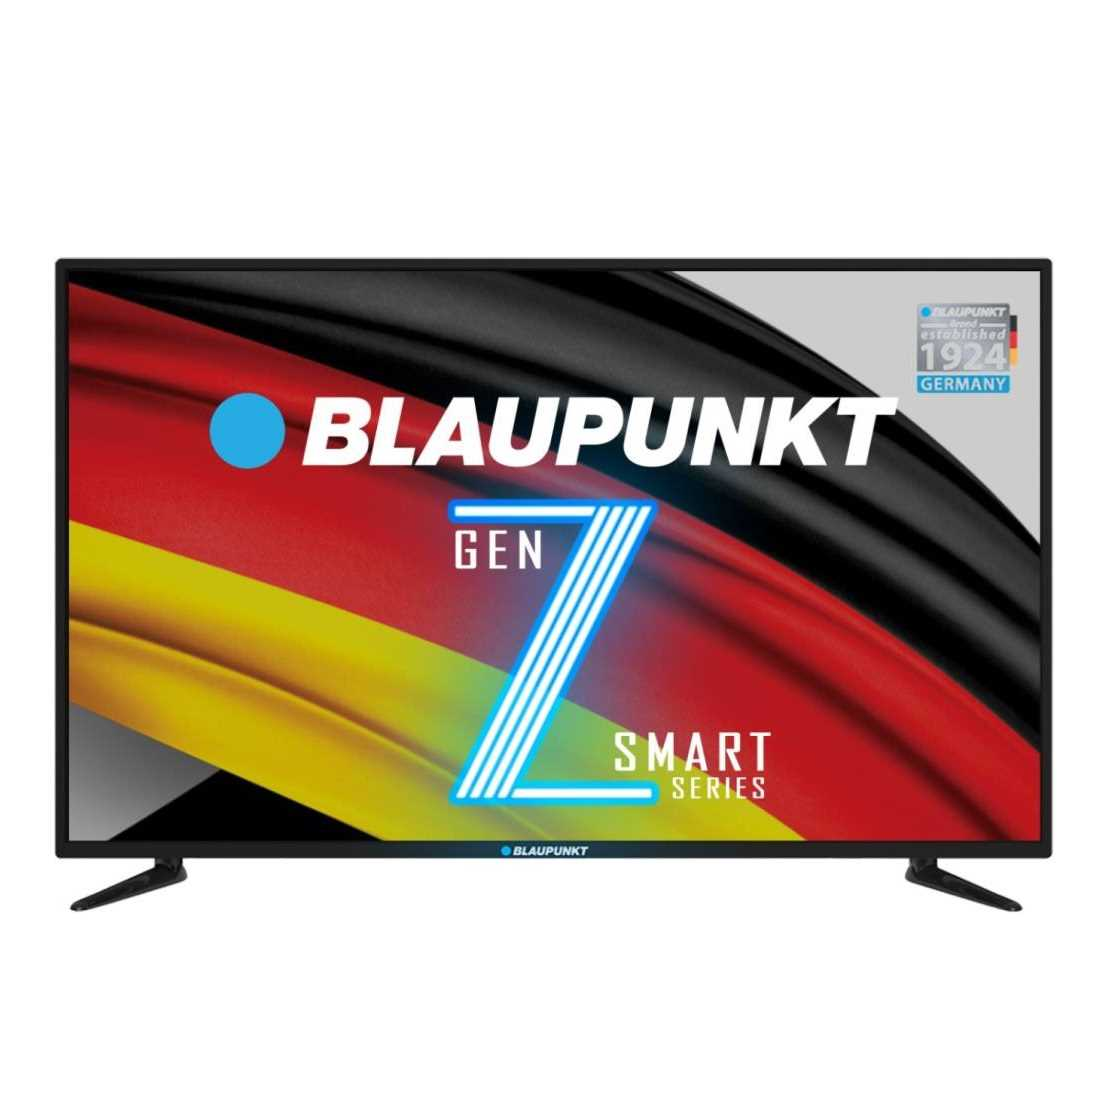 Blaupunkt GenZ Smart BLA43BS570 43 Inch Full HD Smart LED Television